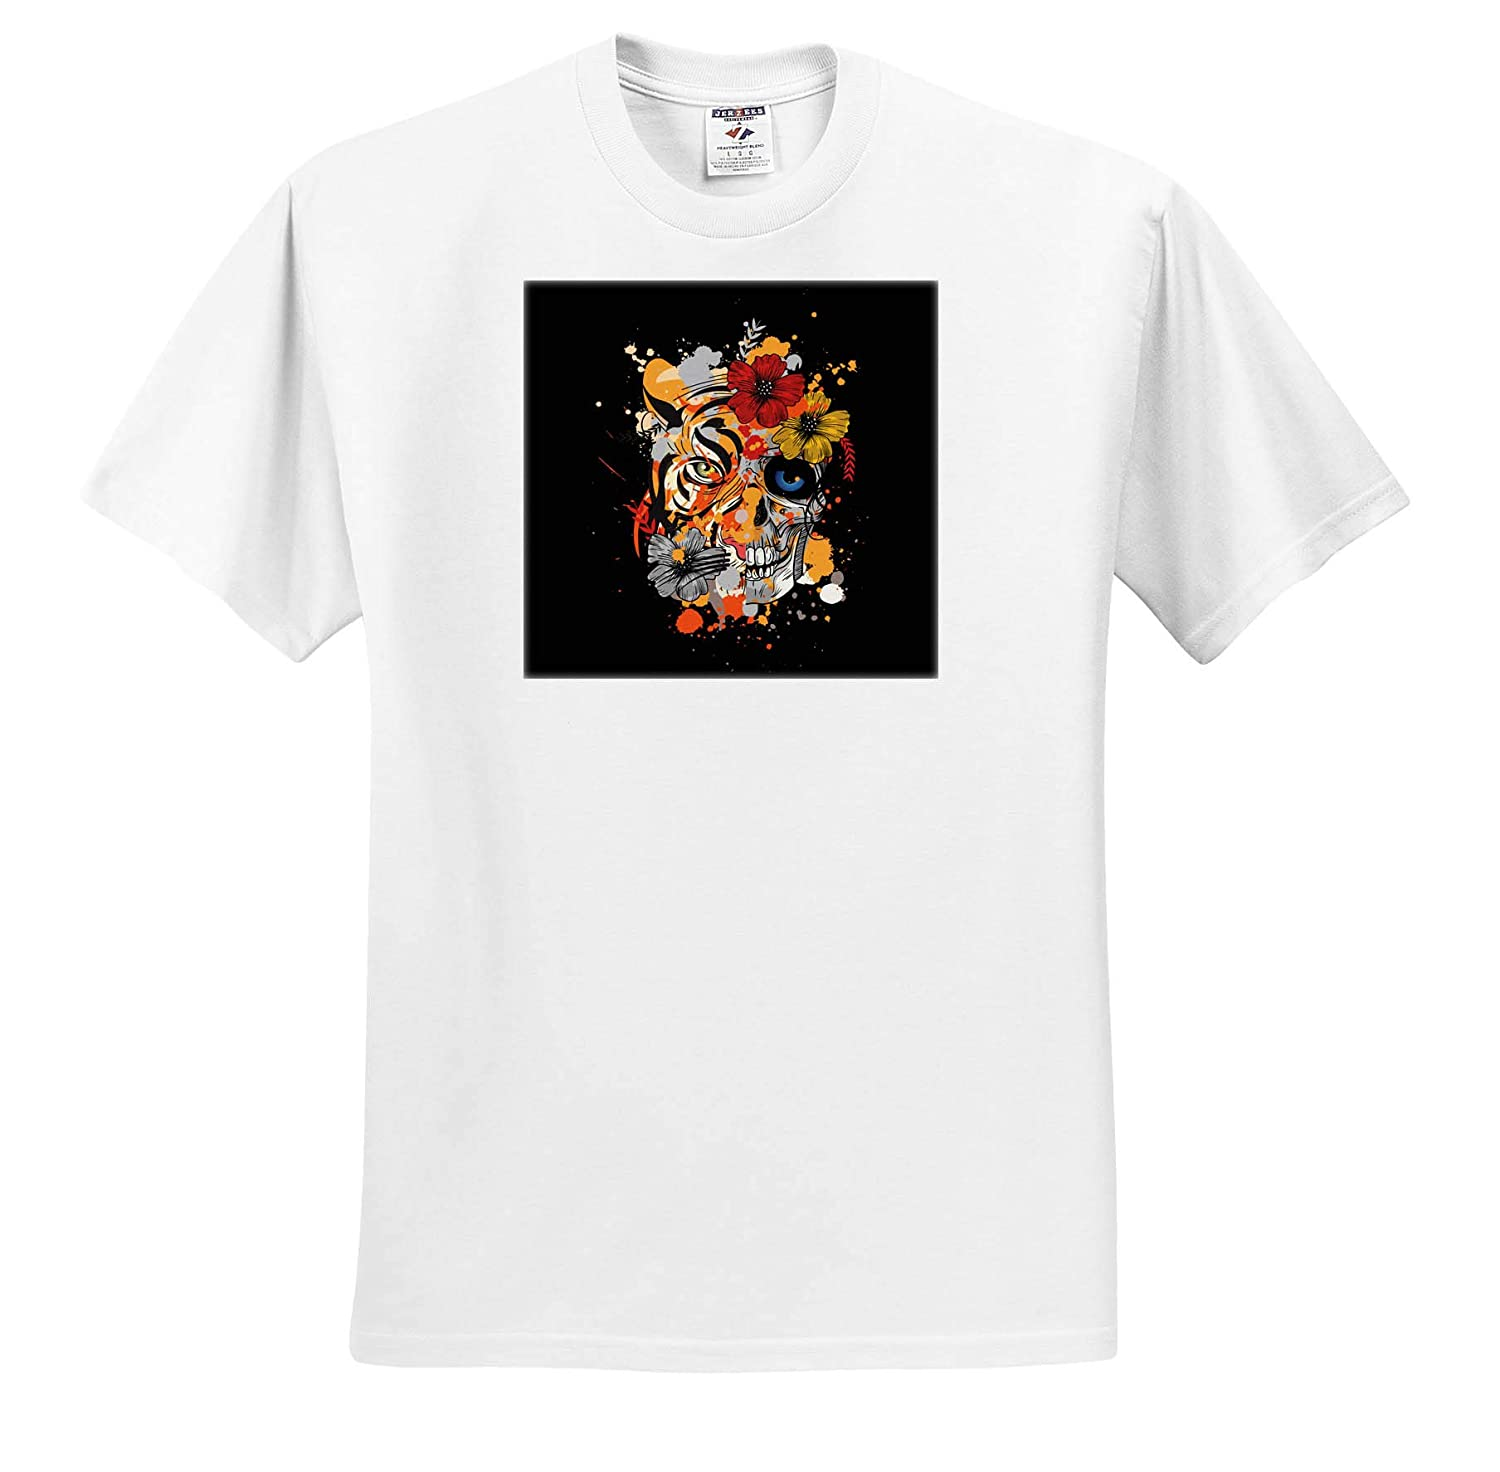 Adult T-Shirt XL 3dRose Sven Herkenrath Animal Dreaming Head of Skull with Tiger Wildlife Animal and Hibiscus ts/_320732